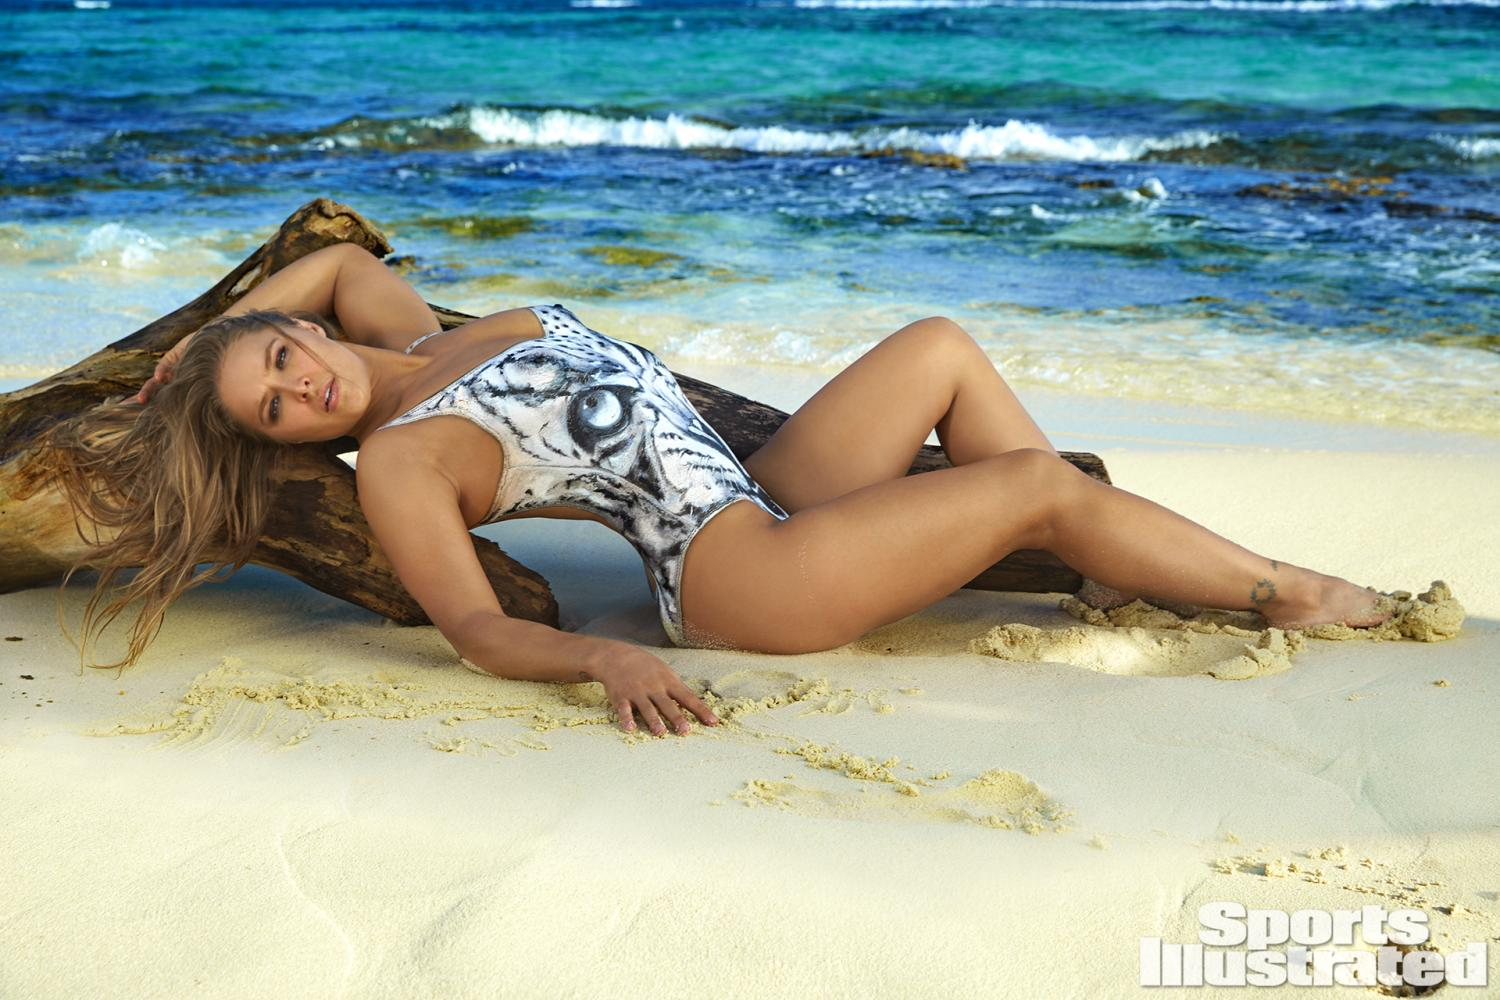 ronda-rousey-foi-capa-da-revista-sports-illustrated-so-de-bodypaint6